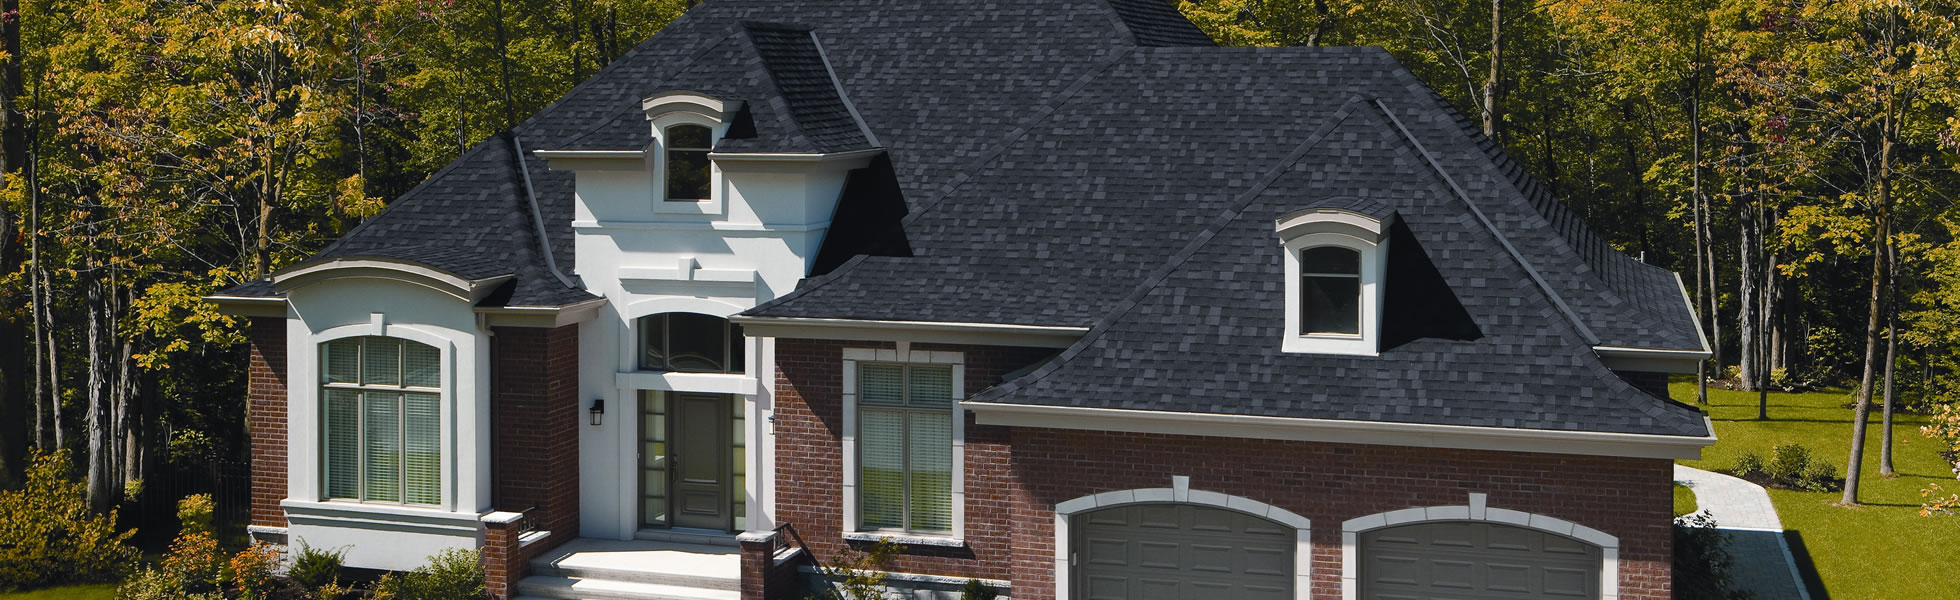 Roofing Services - Elegant Home Exterior